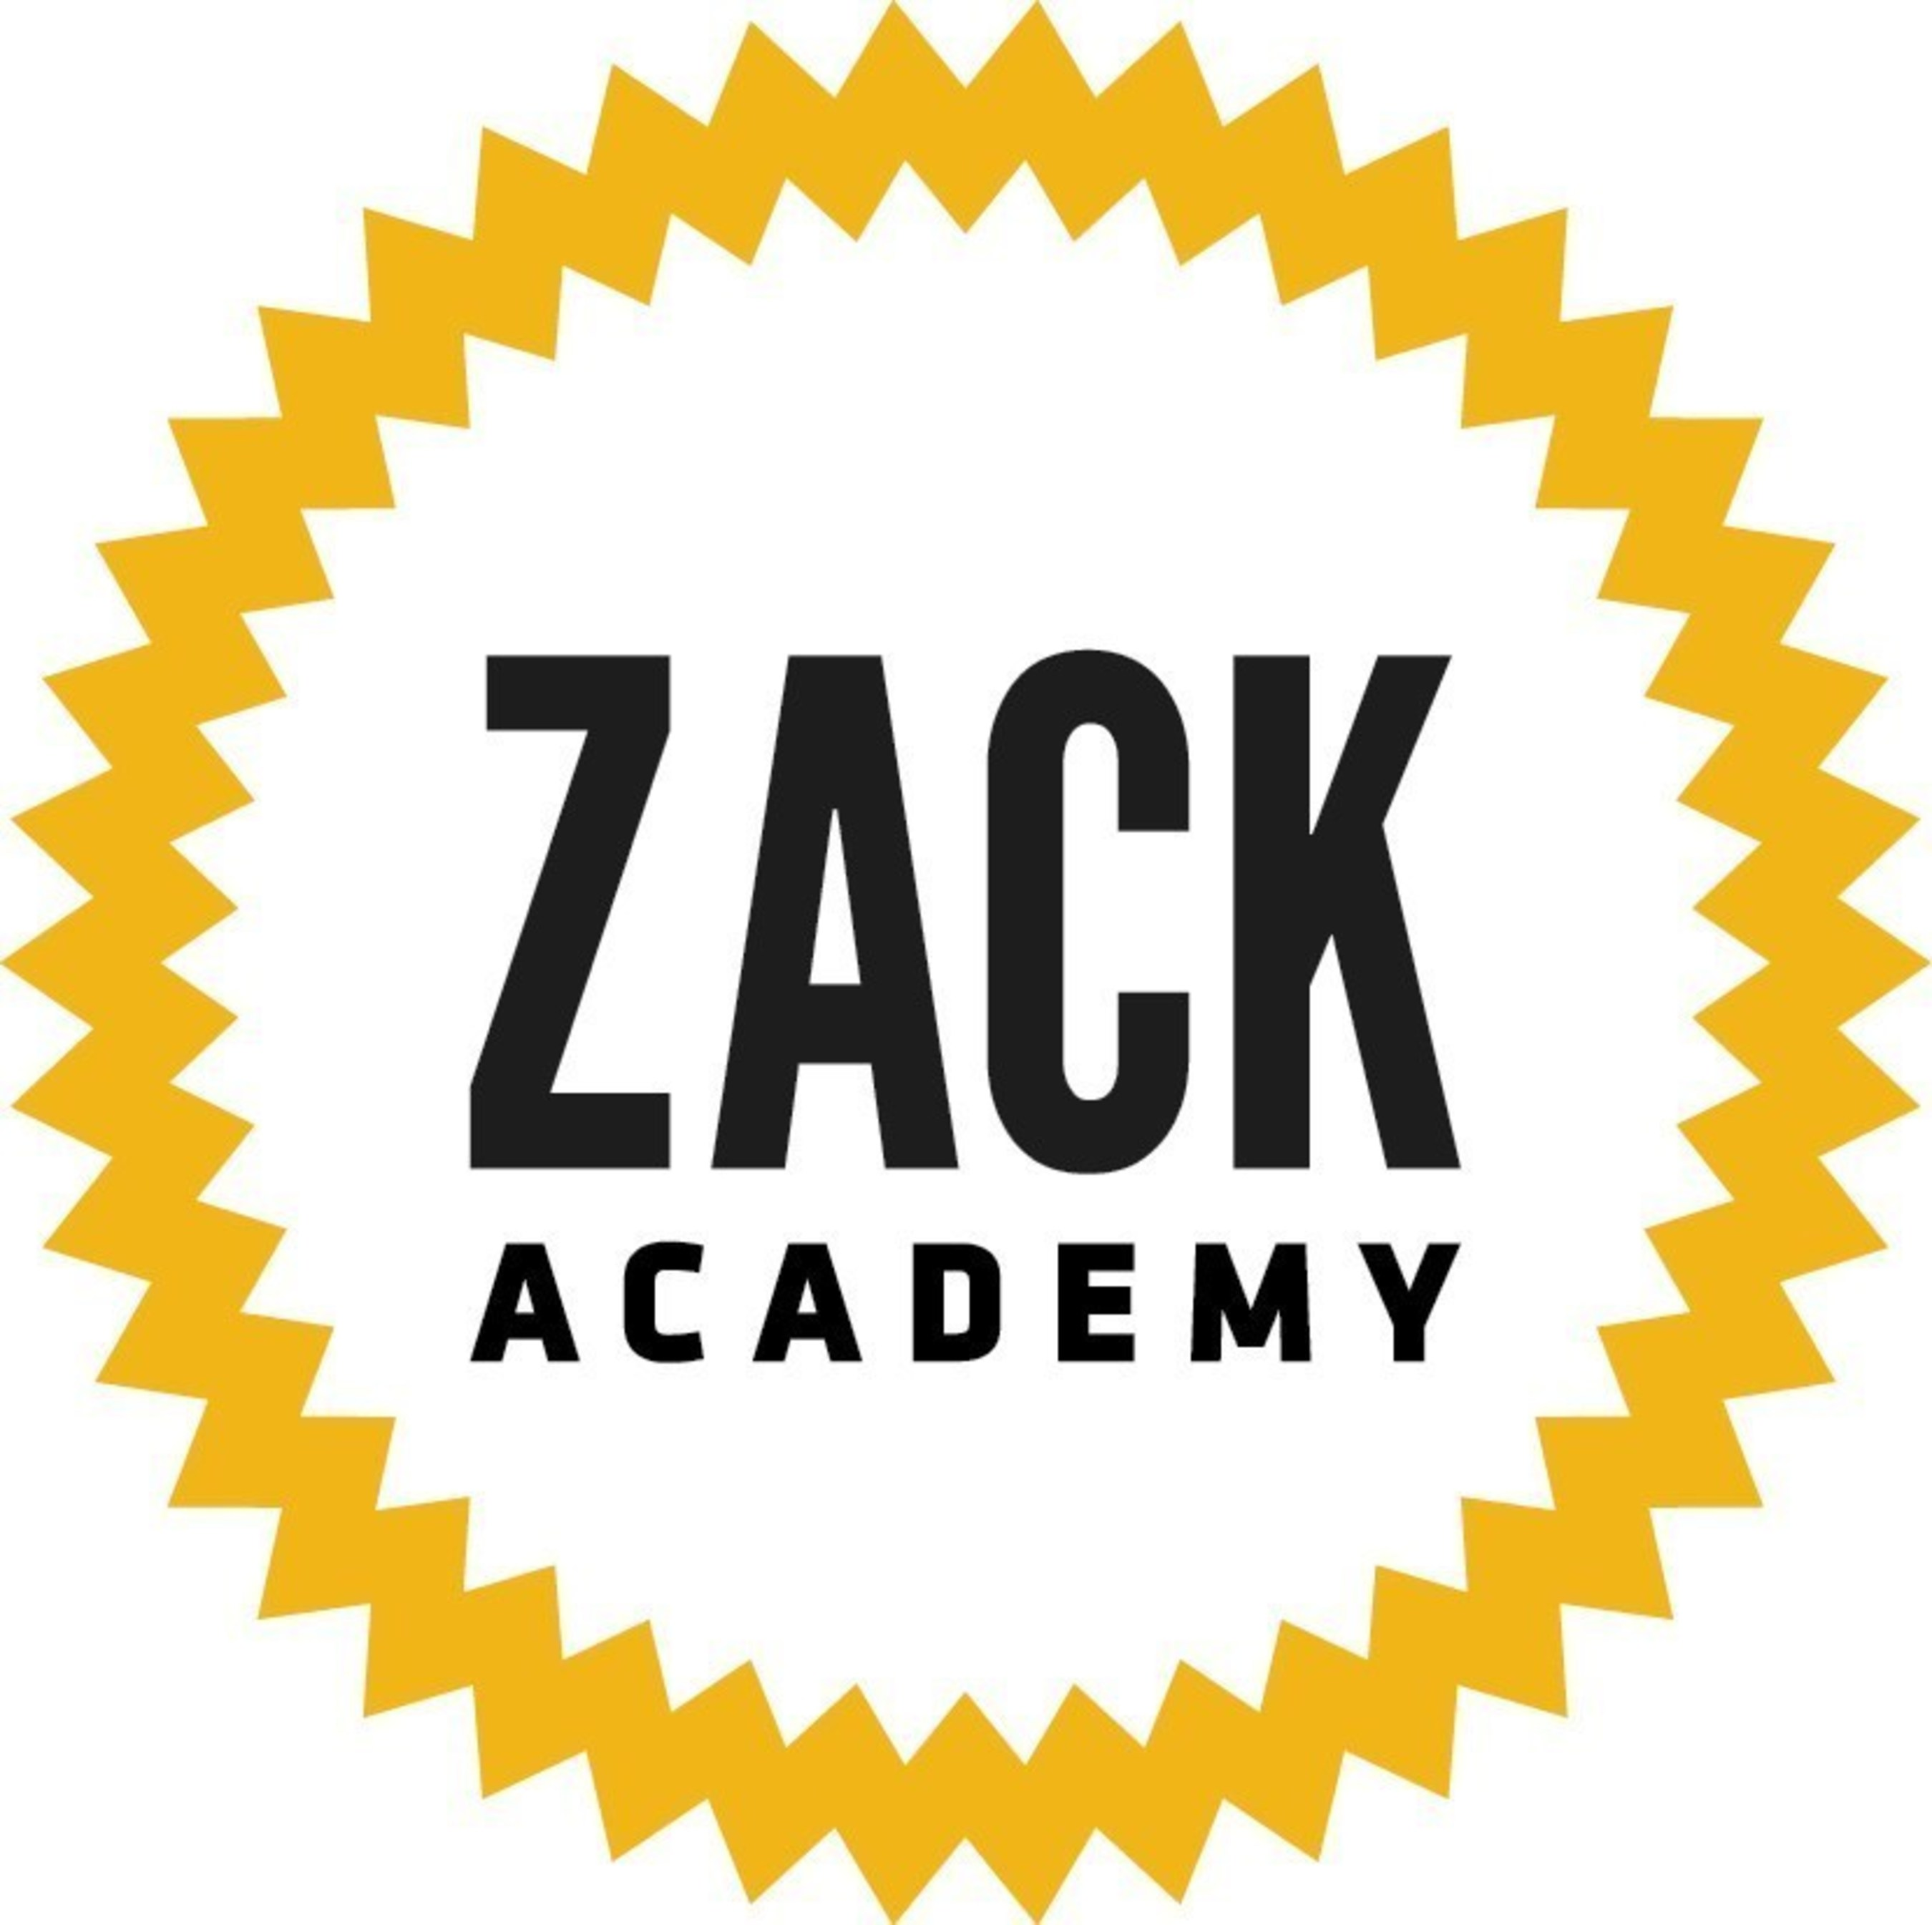 Zack Academy Launches Career Oriented Training Online Marketplace